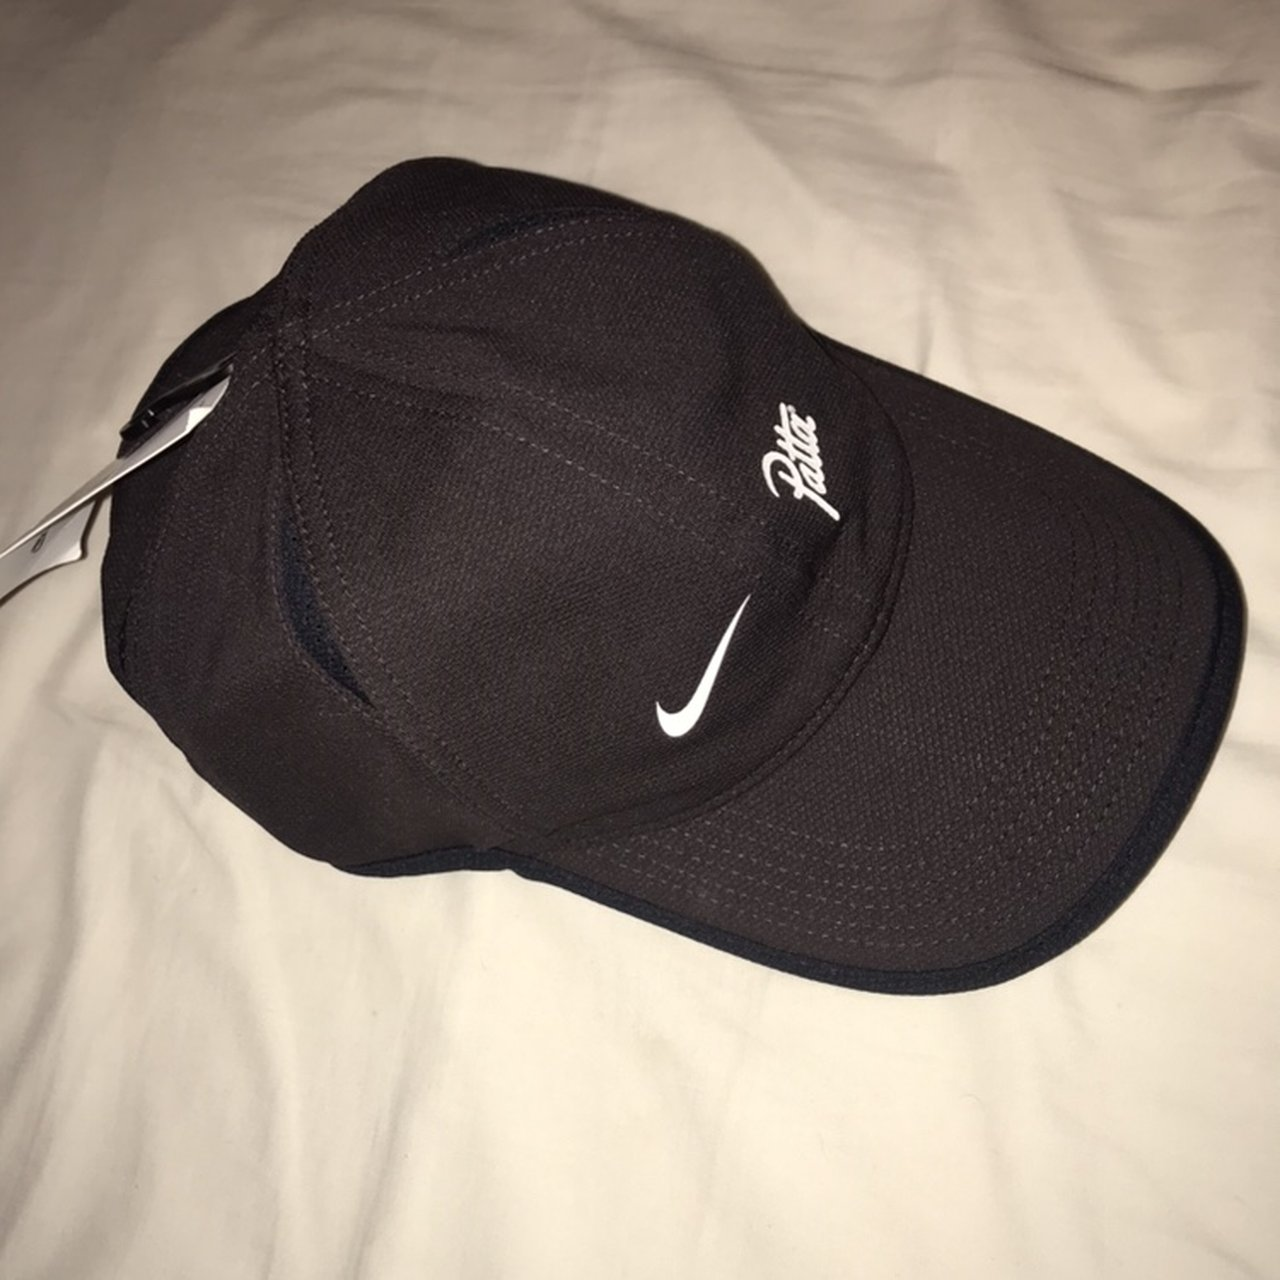 Nike x Patta AeroBill Cap. New with tags Bought from Patta - Depop eae4be70ccf